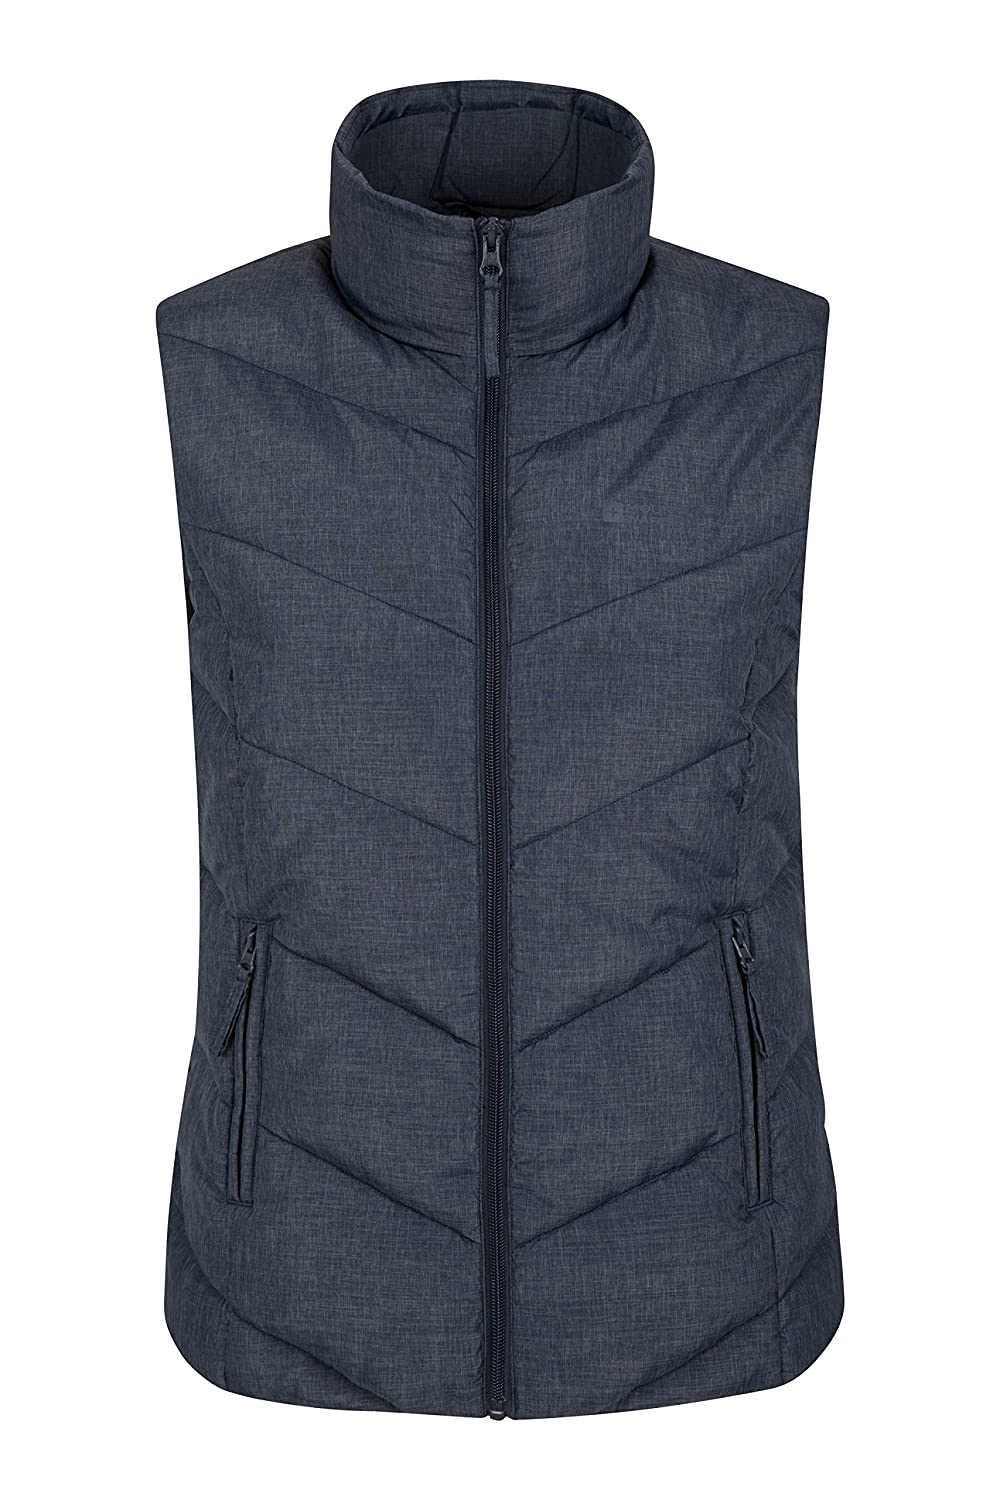 Mountain Warehouse Opal Womens Padded Gilet